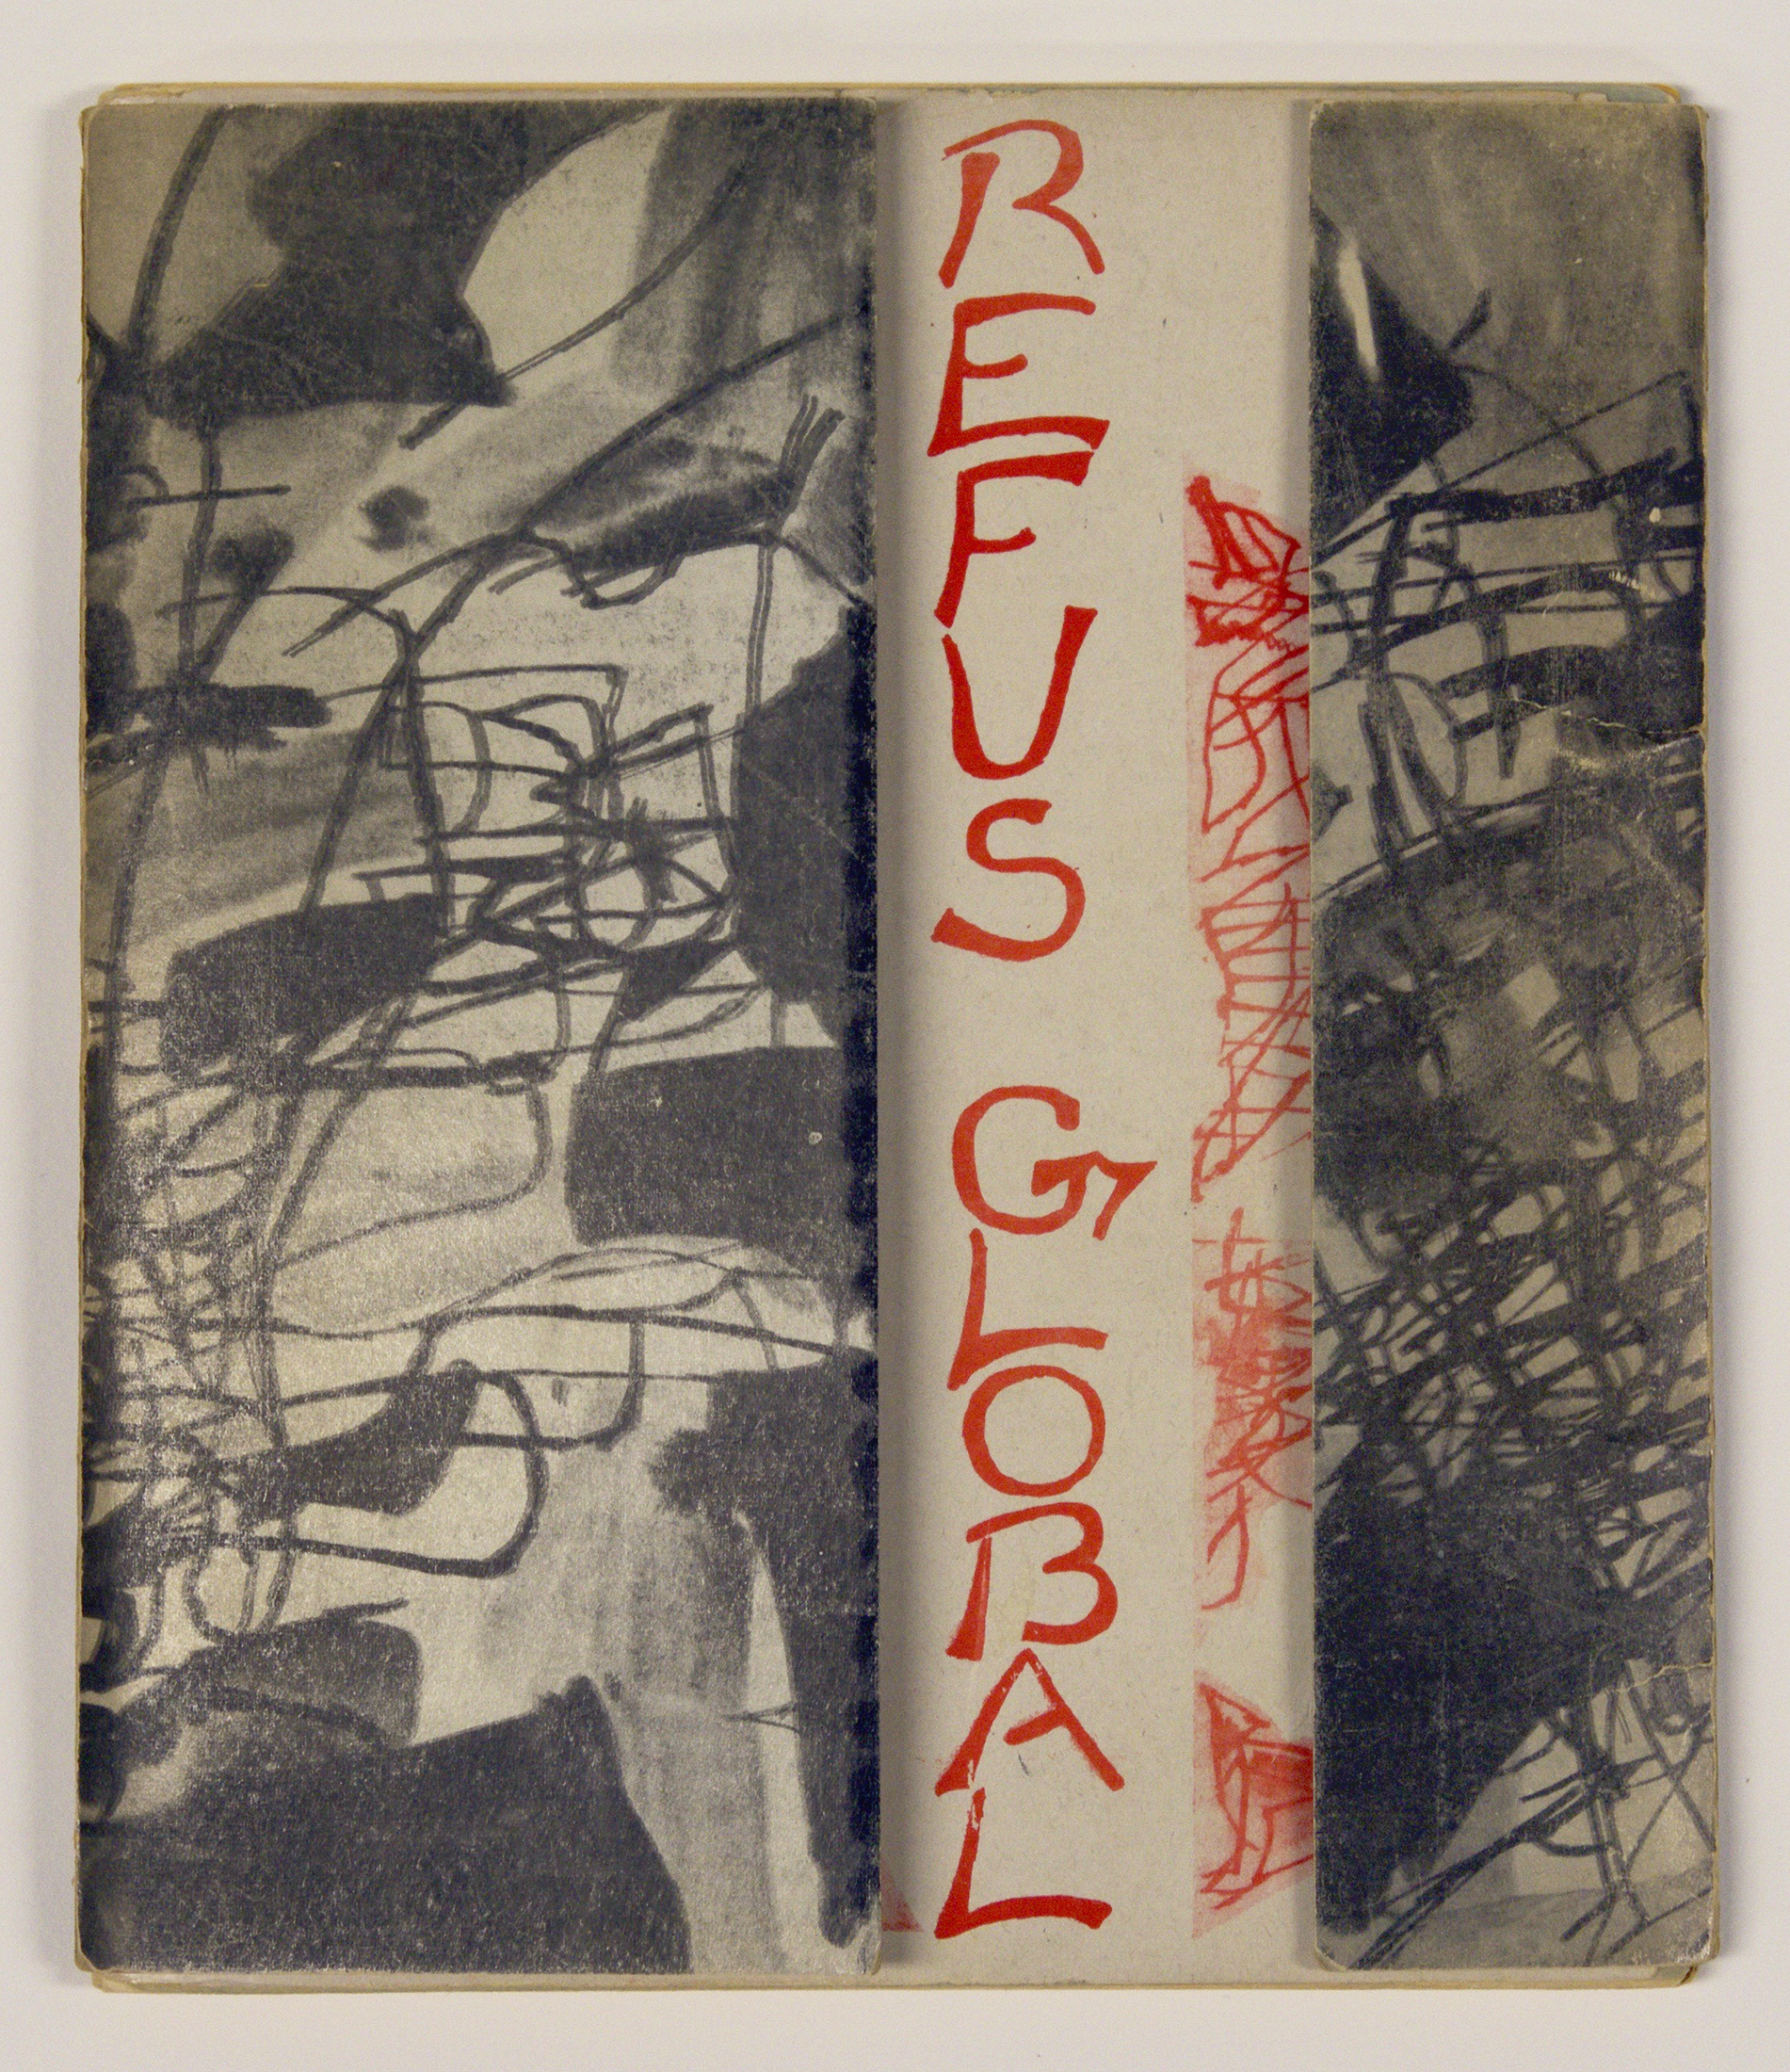 "The title ""Refus global"" is handwritten vertically in red ink on the title page of a book pamphlet. It is visible between the half-open flaps of the cardboard cover, which are decorated with non-figurative motifs in black and white."